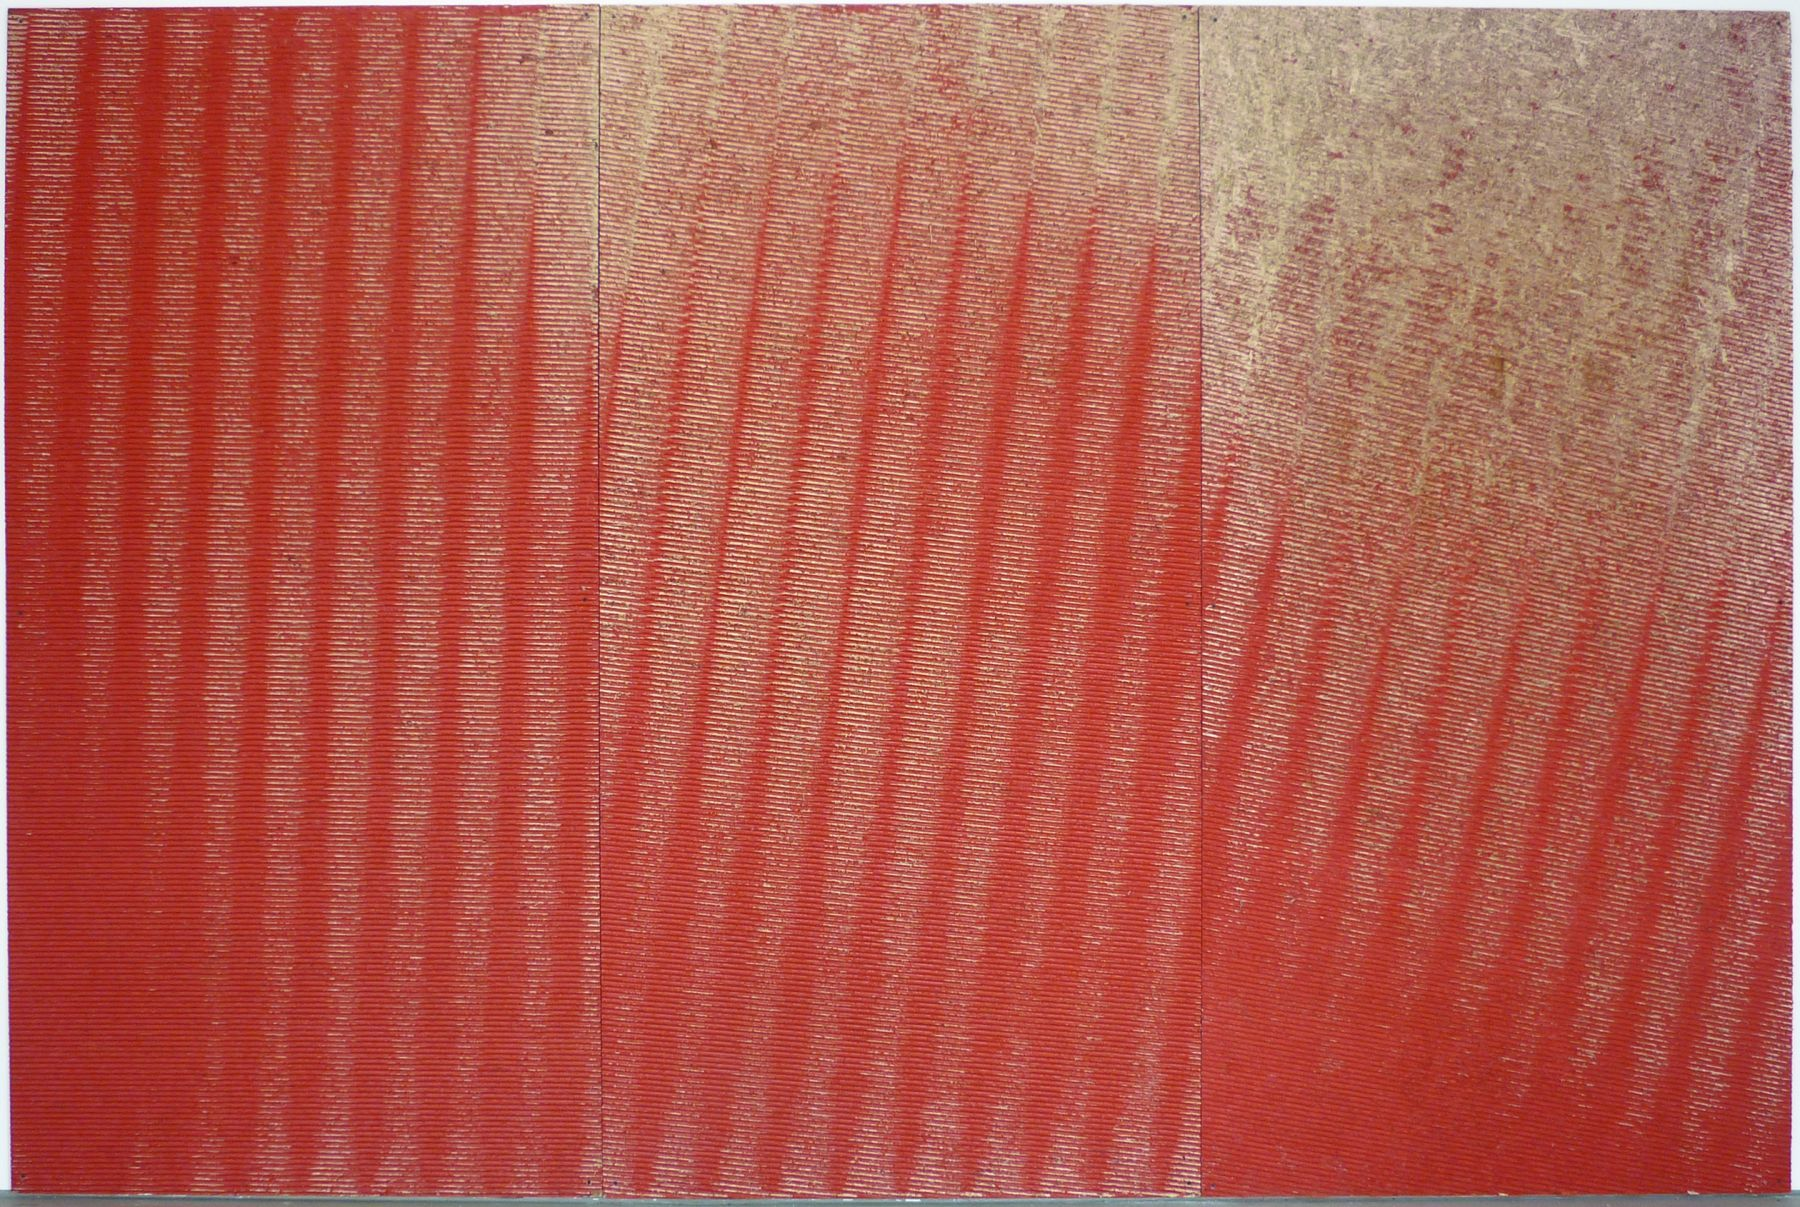 Michael DeLuciaTuning (Red)2011Household paint on plywood96 x 144 inches (243.8 x 365.8 cm)MDe 68